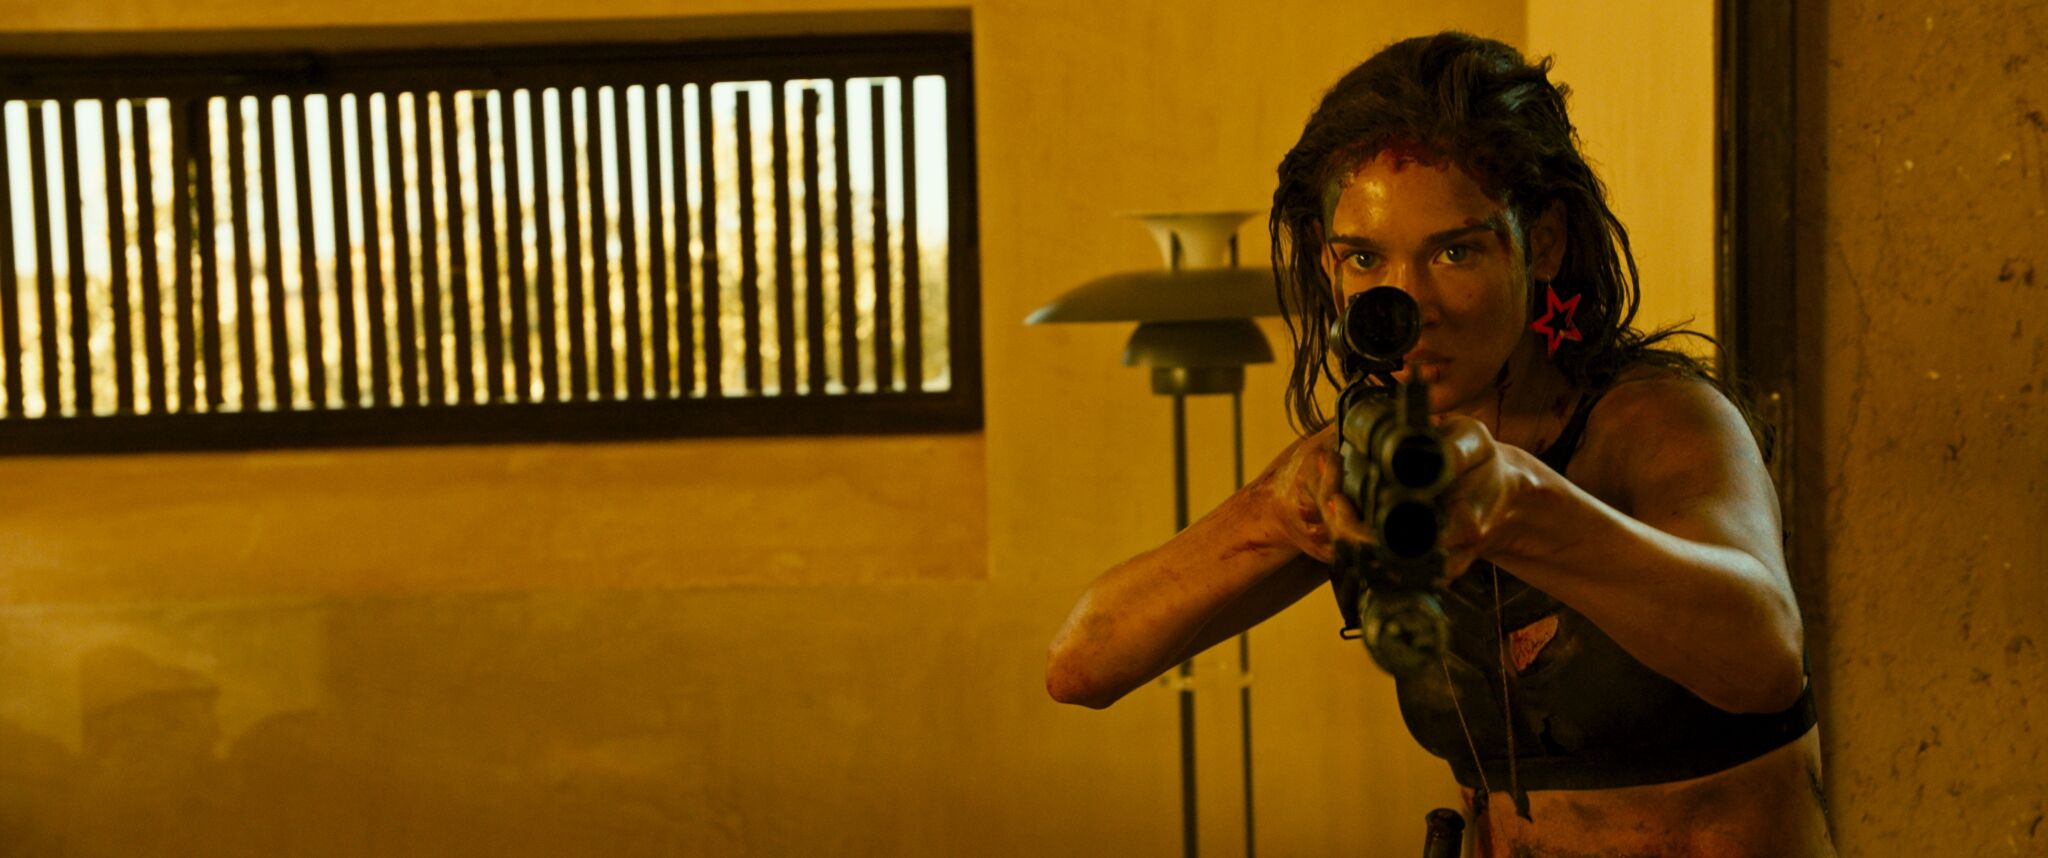 Revenge Movie starring Matilda Lutz : Teaser Trailer